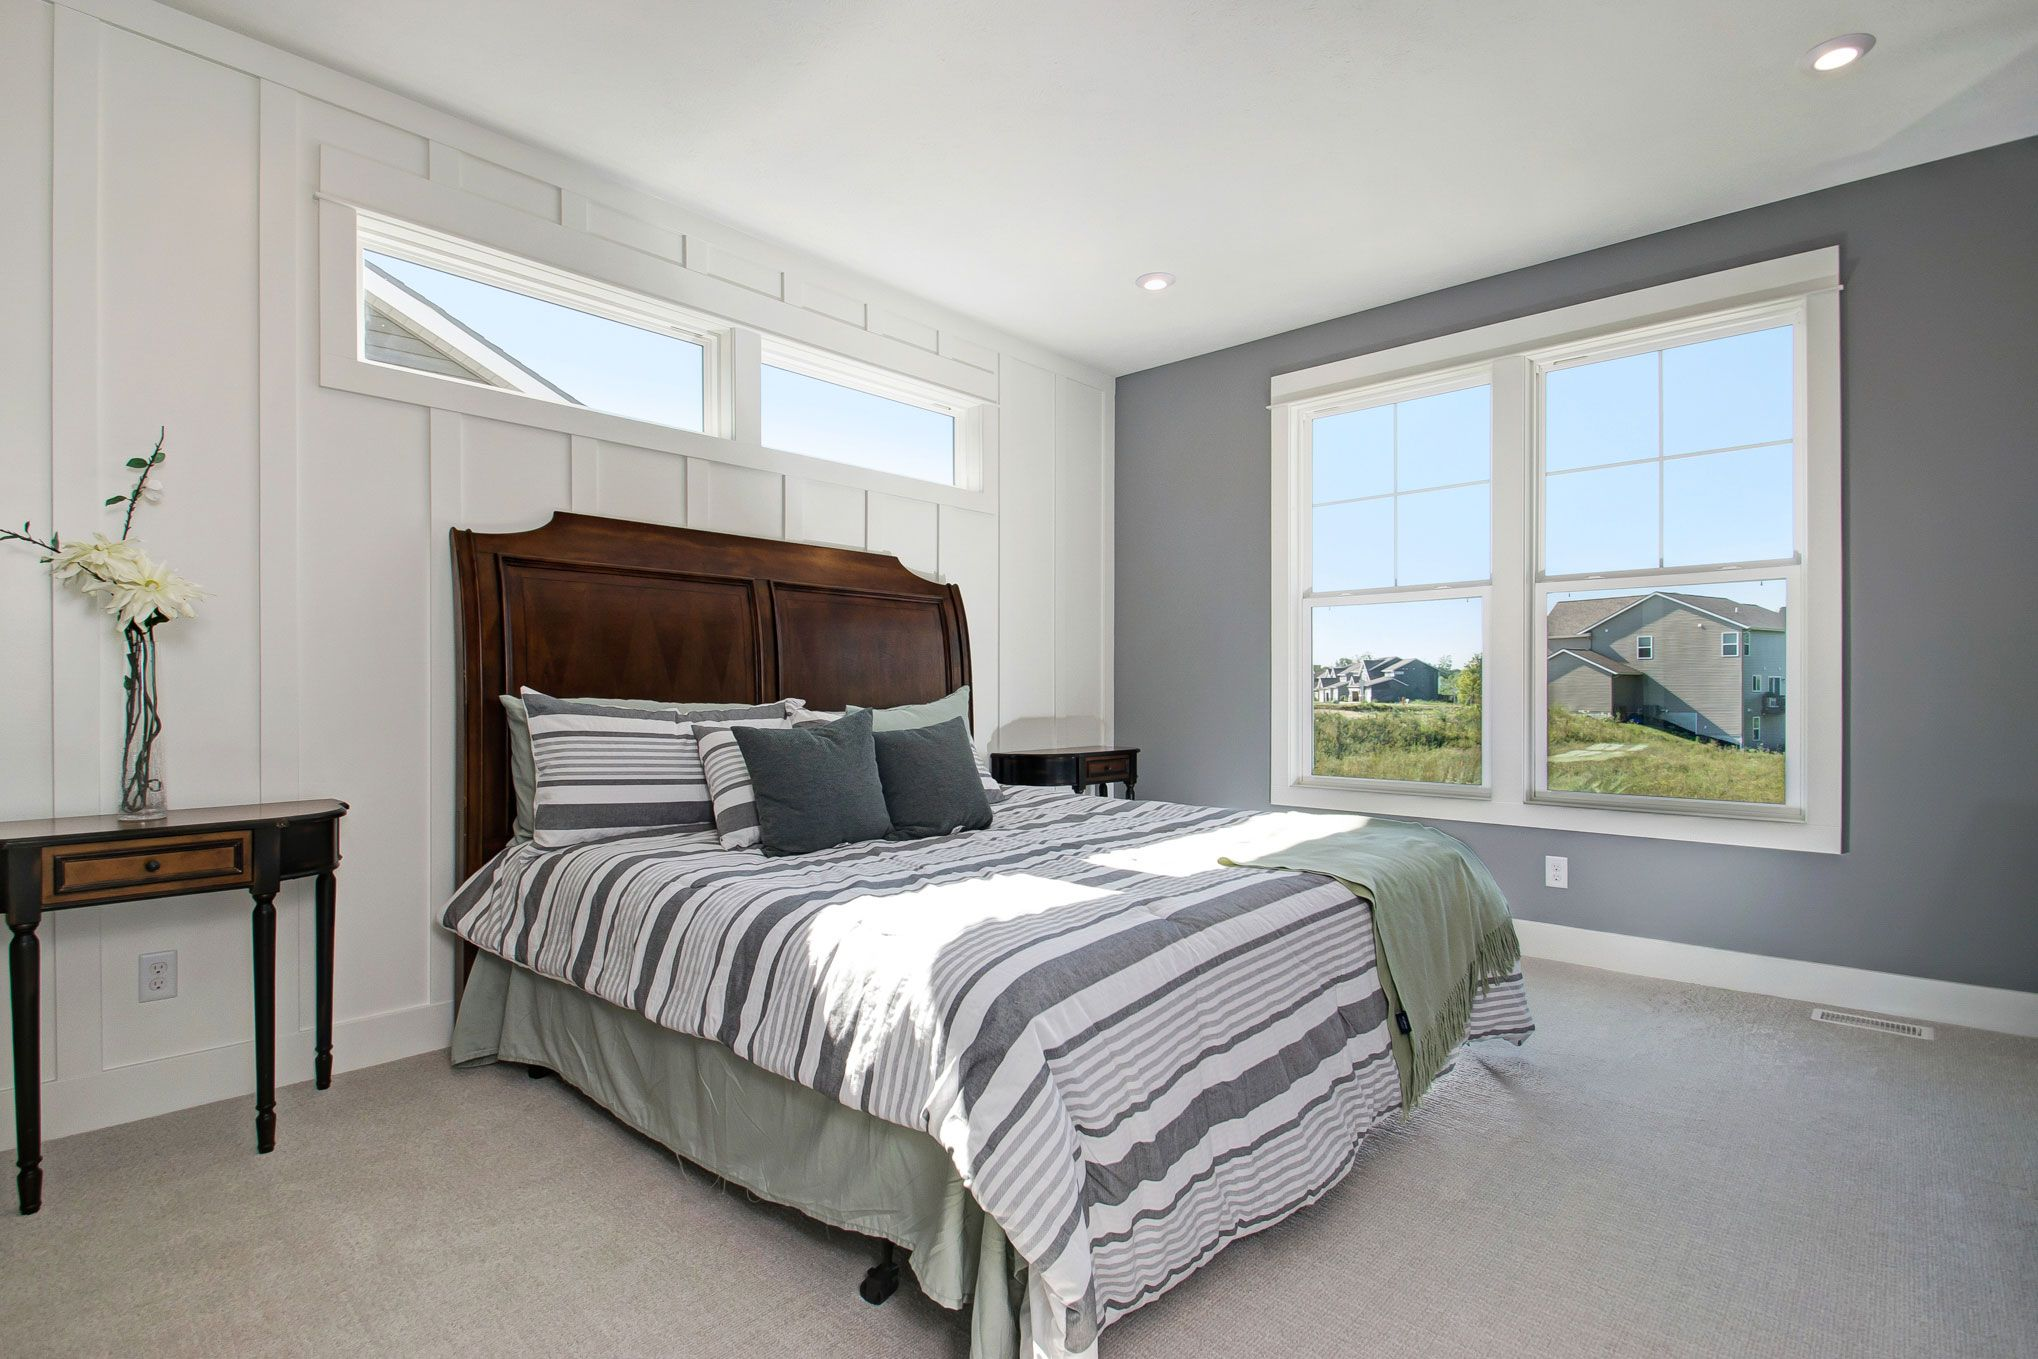 Bedroom featured in The Willow ll By Eastbrook Homes Inc. in Grand Rapids, MI